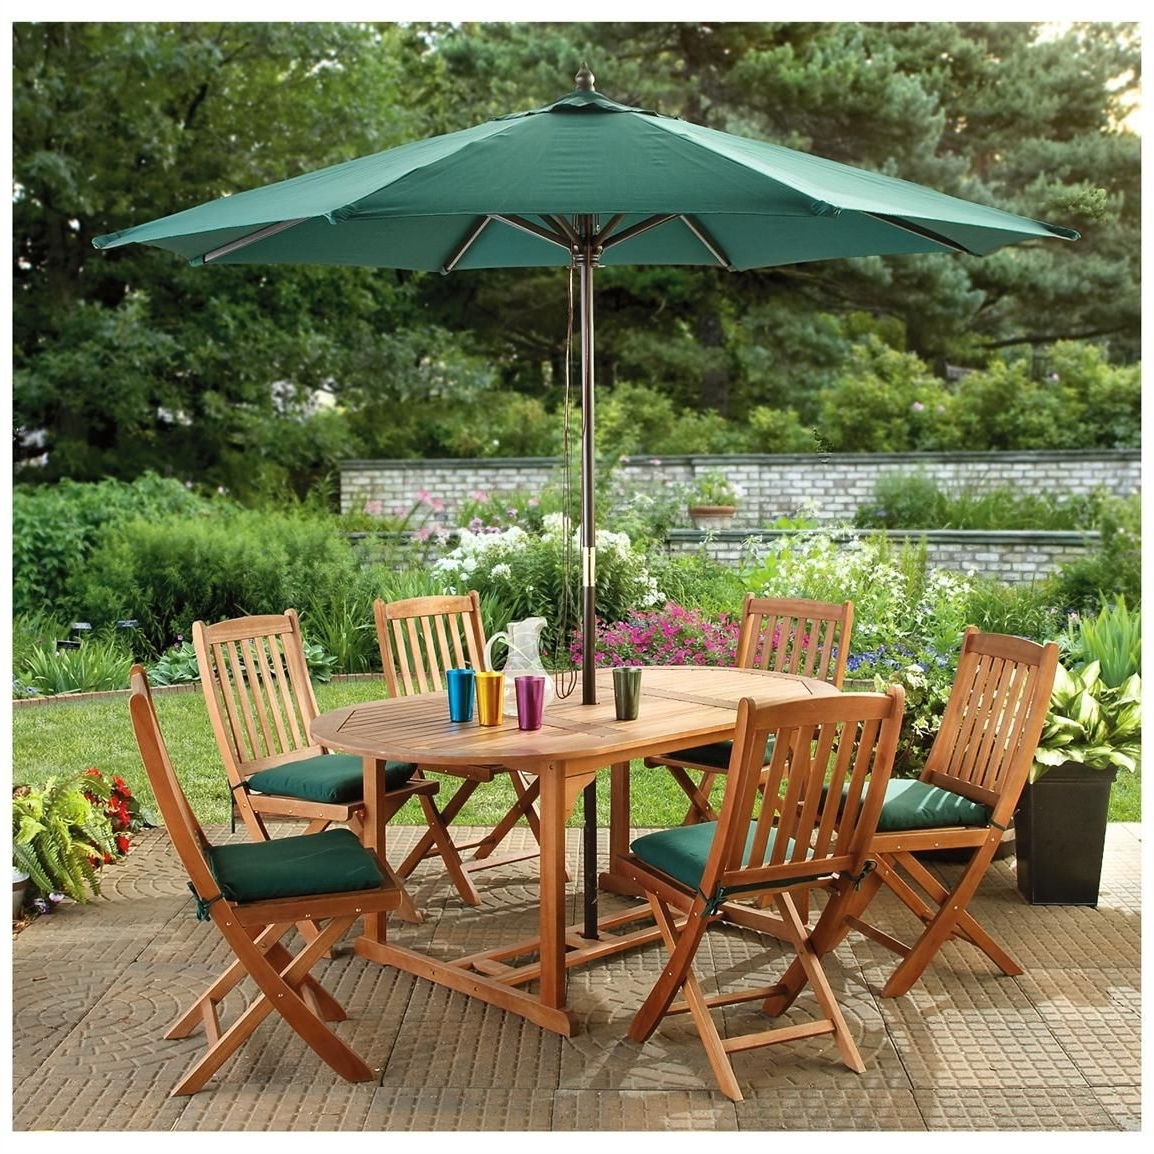 Patio Furniture With Umbrellas Regarding Most Recent Umbrellas For Patio Tables – Theradmommy (View 12 of 20)